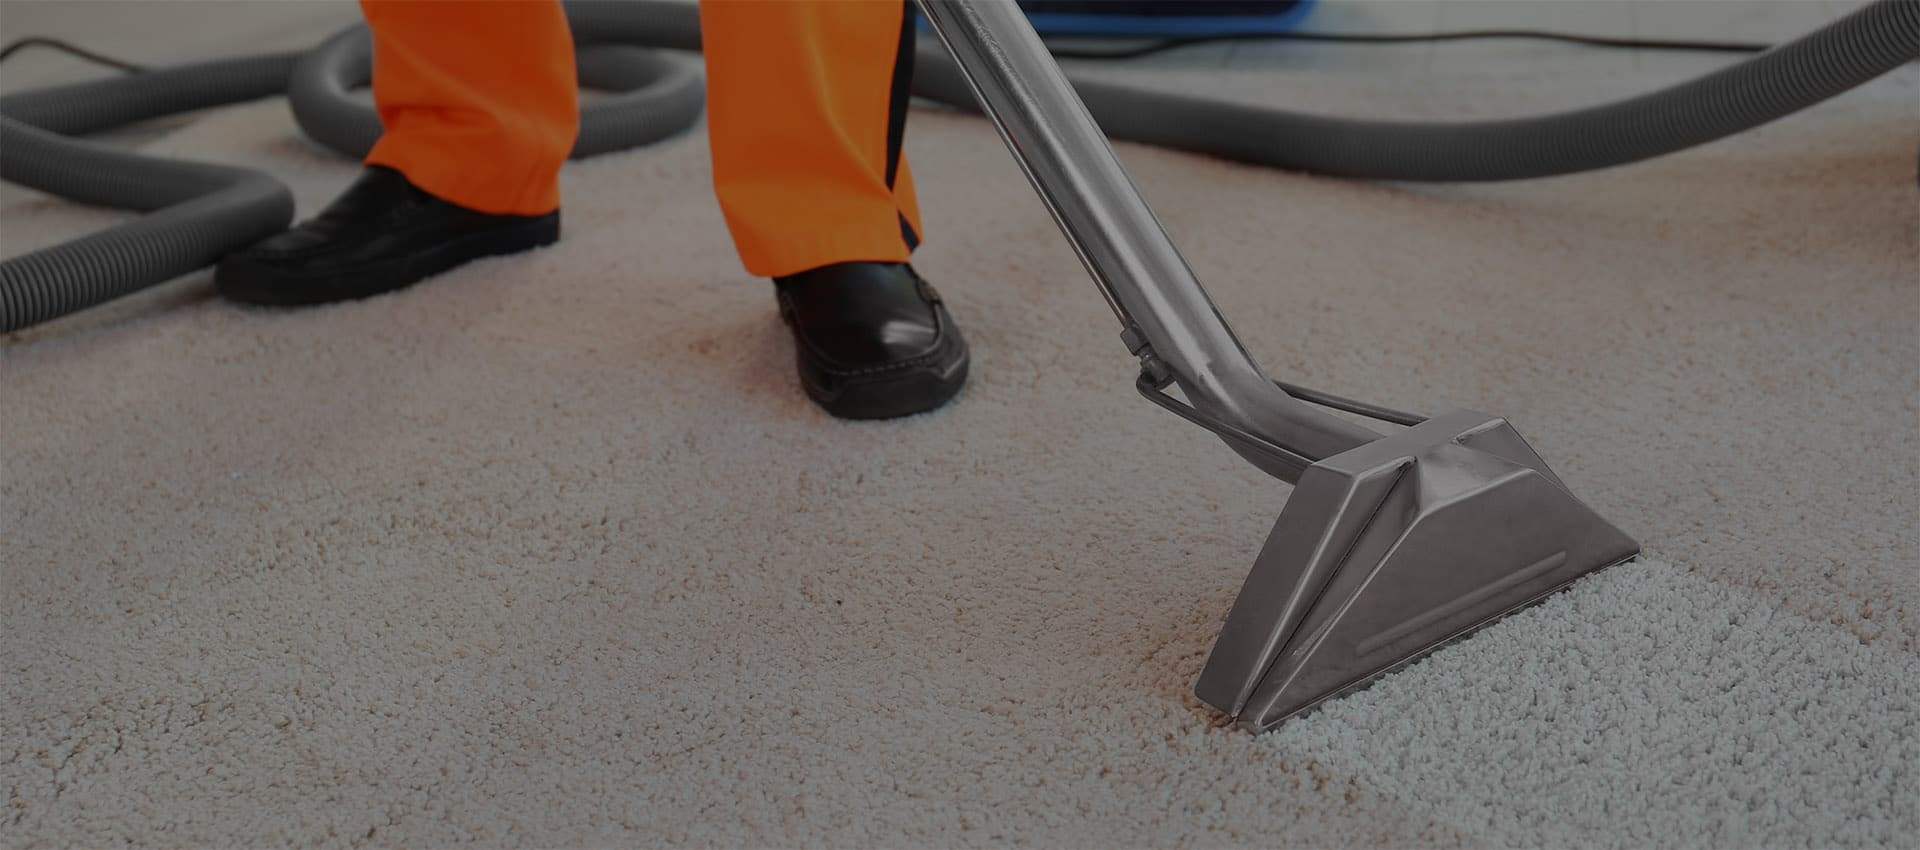 Central Steam Cleaning team drying carpet cleaning services